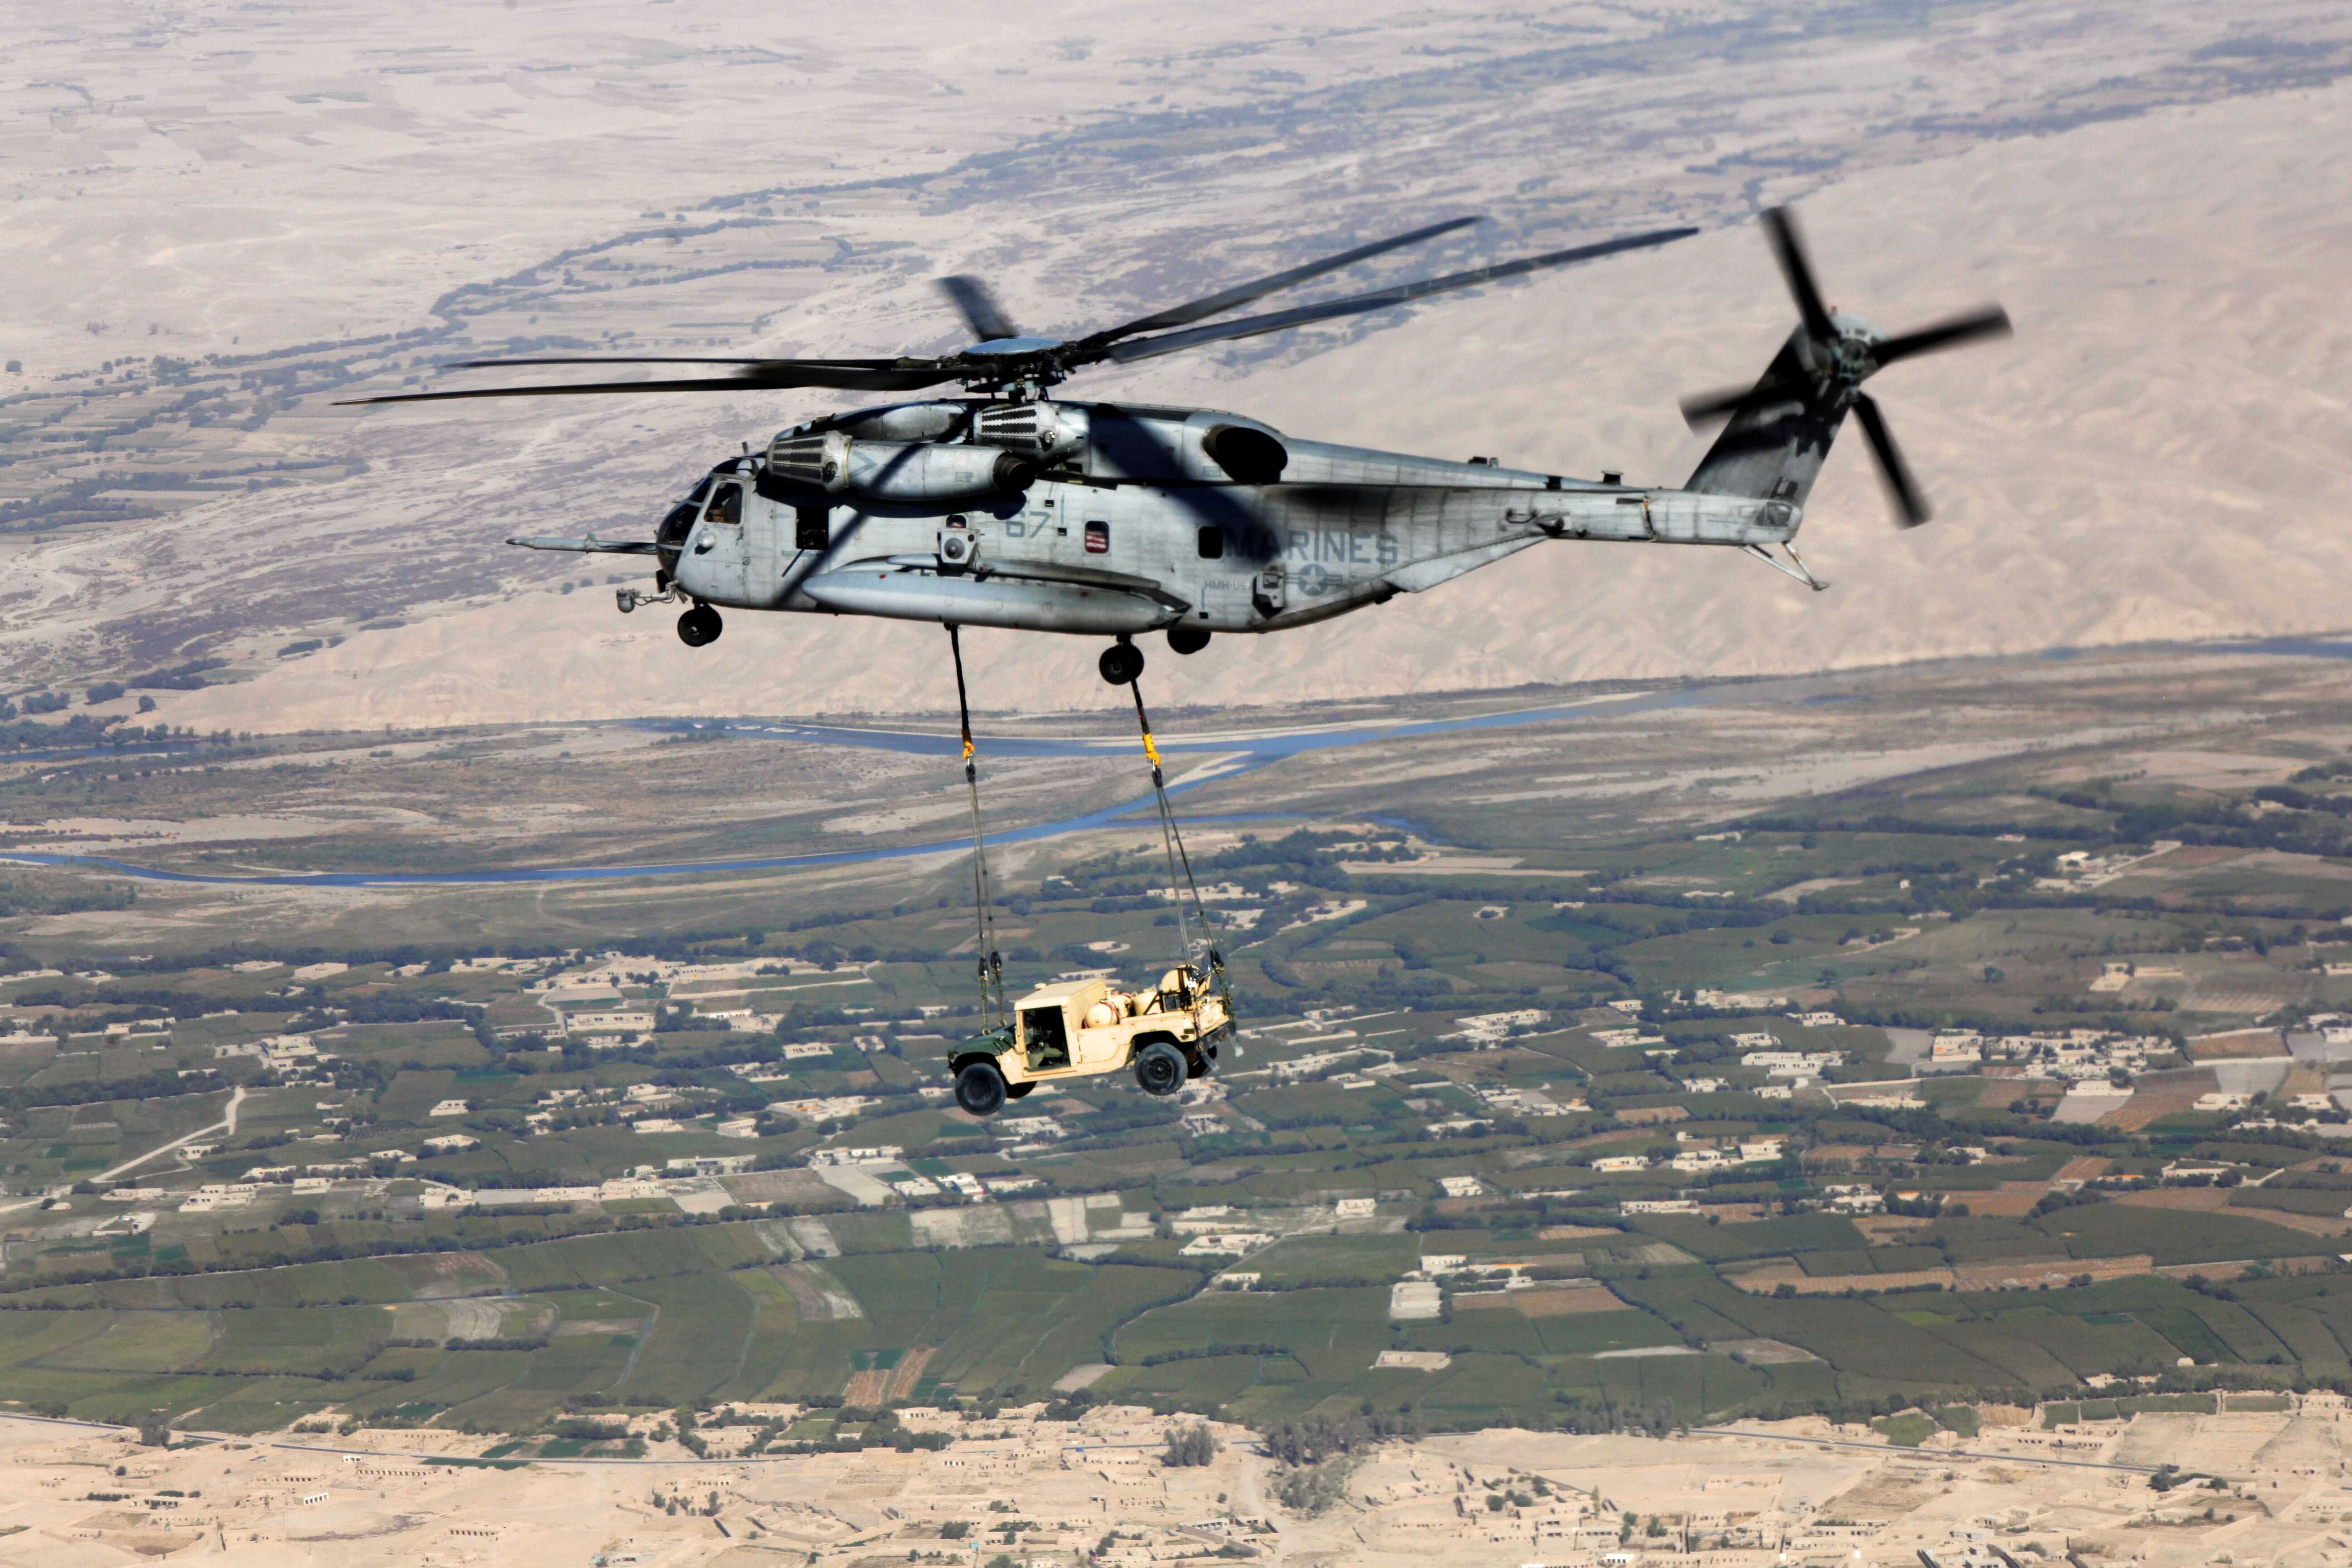 A CH-53E Super Stallion helicopter transports a high-mobility, multipurpose vehicle over Helmand province, Afghanistan, Oct. 7, 2013. U.S. Marine Corps photo by Sgt. Gabriela Garcia